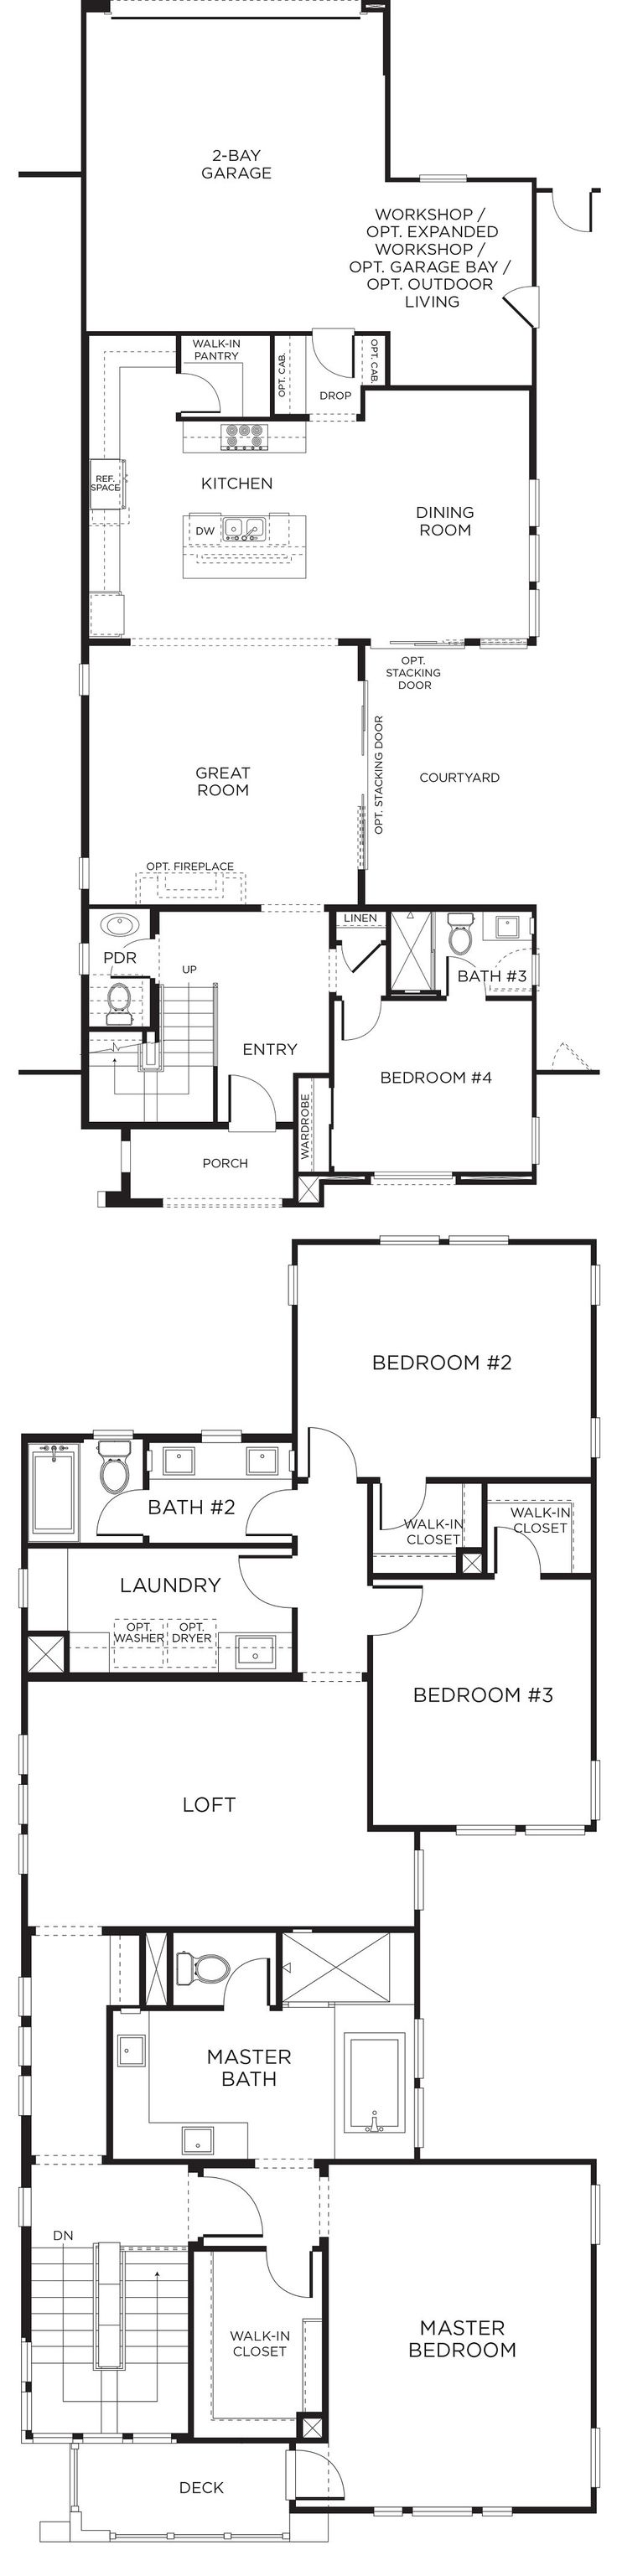 317 best san diego pardee homes images on pinterest san diego casava floor plan 2 pardee homes sandiego newhomes malvernweather Images